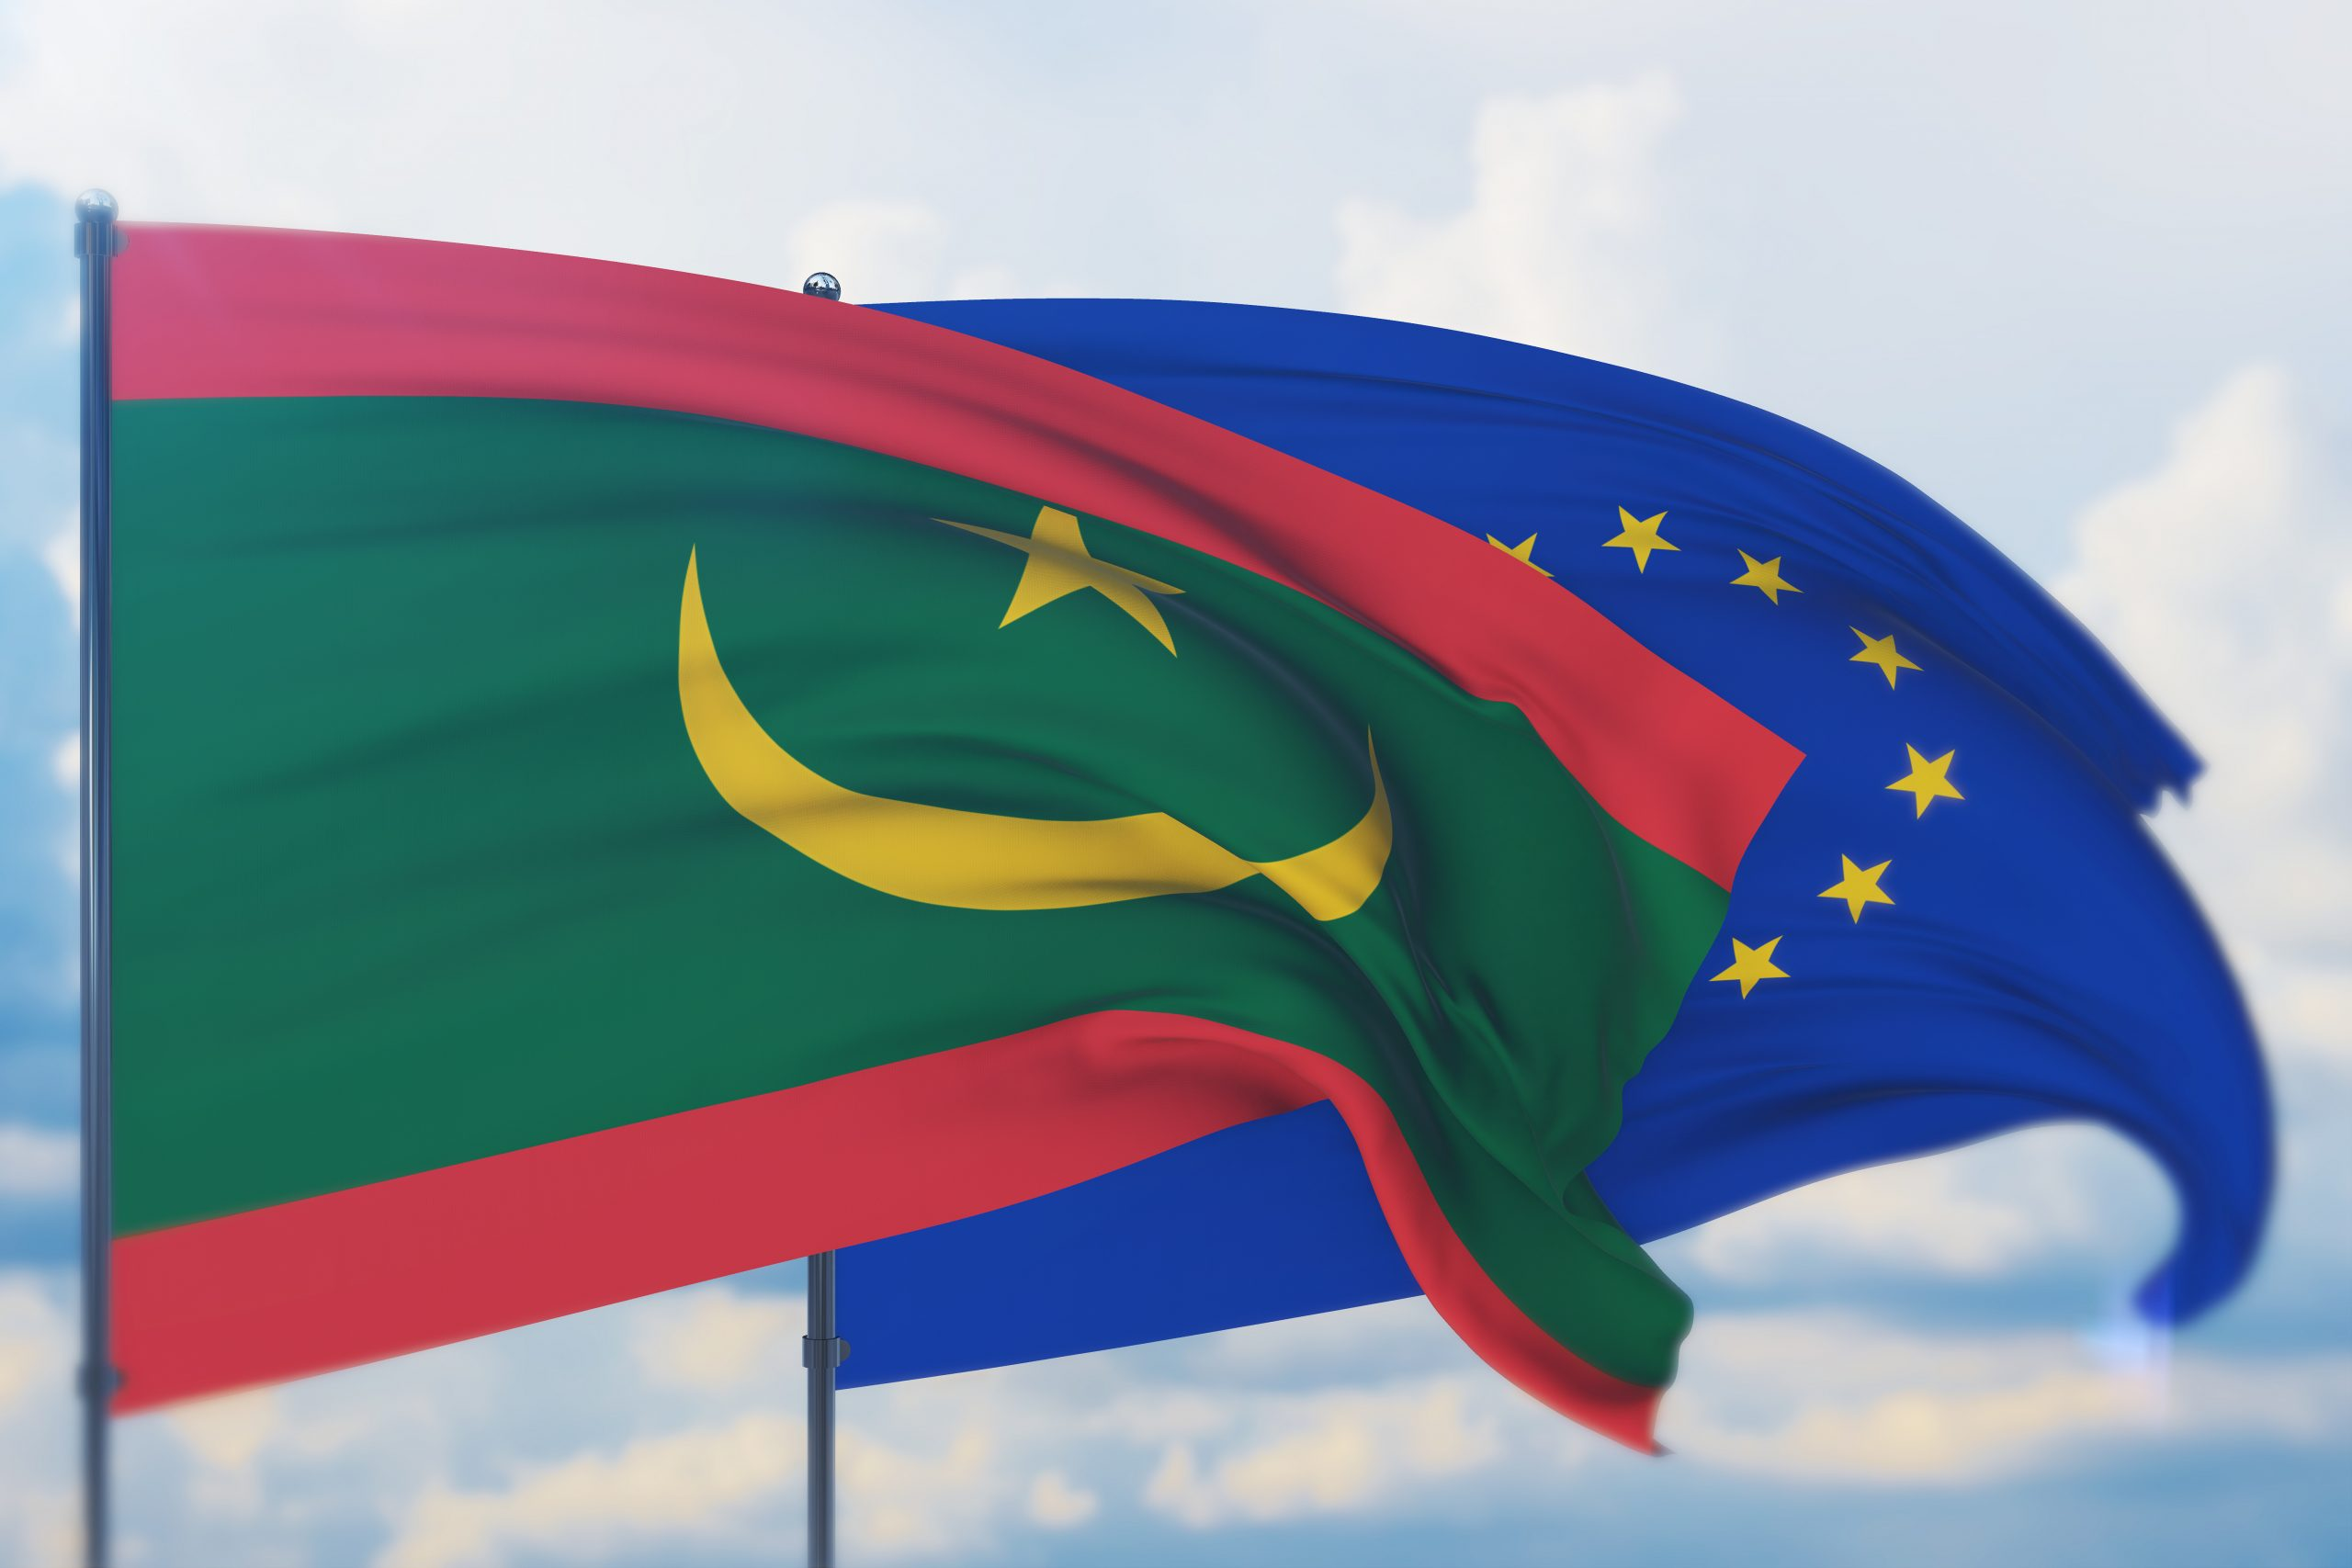 How to apply for a Schengen visa from Mauritania